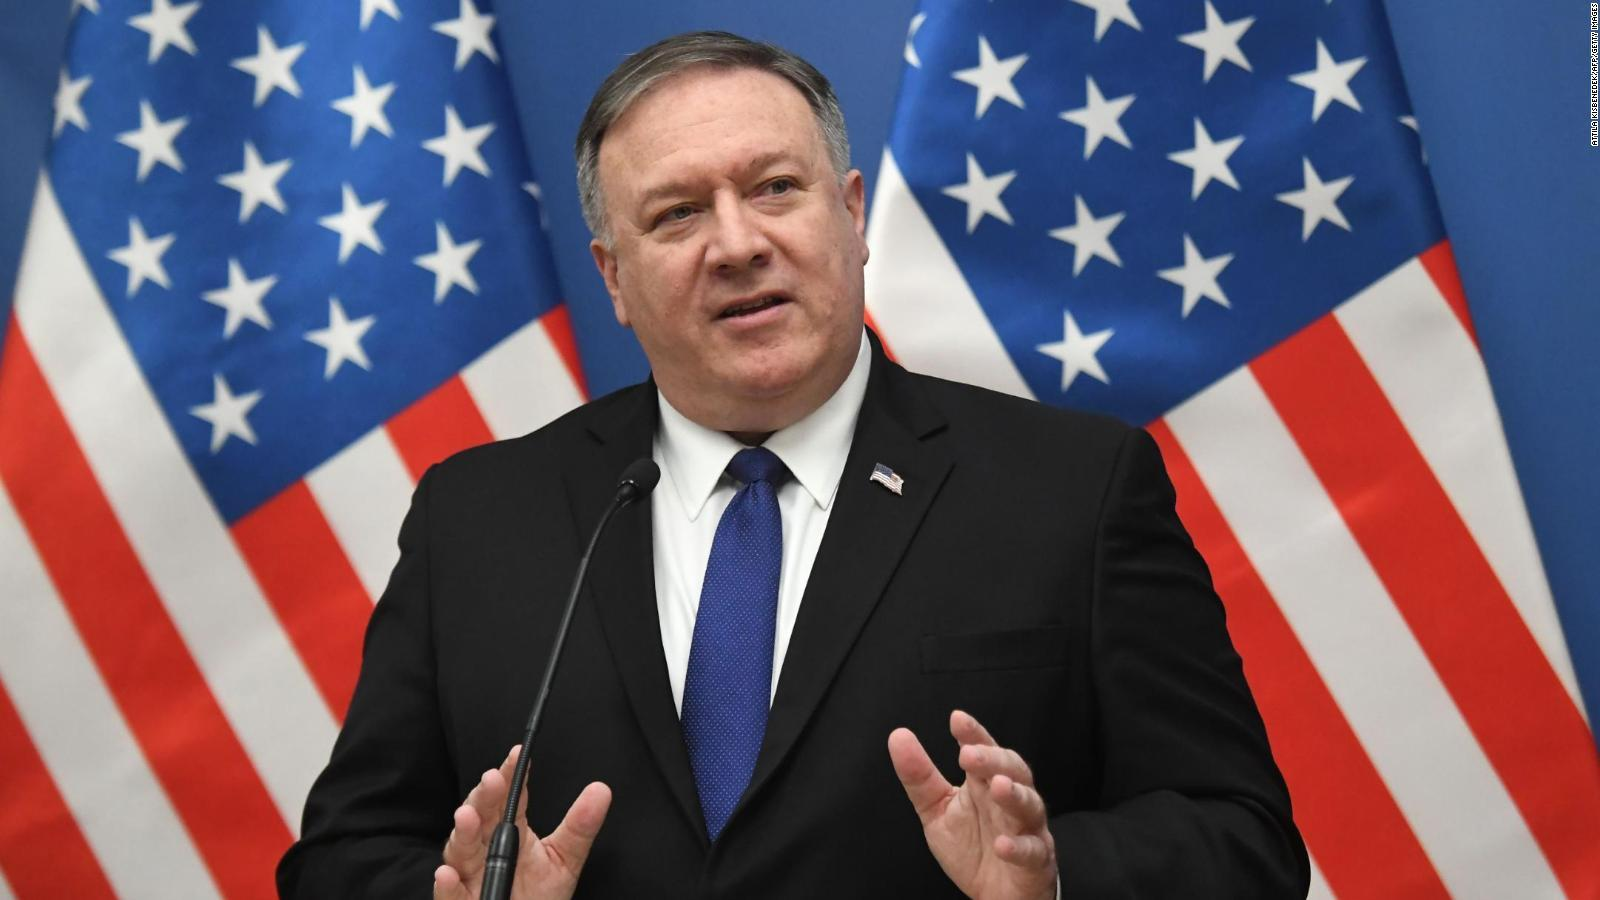 US forms coalition against Iran - Pompeo